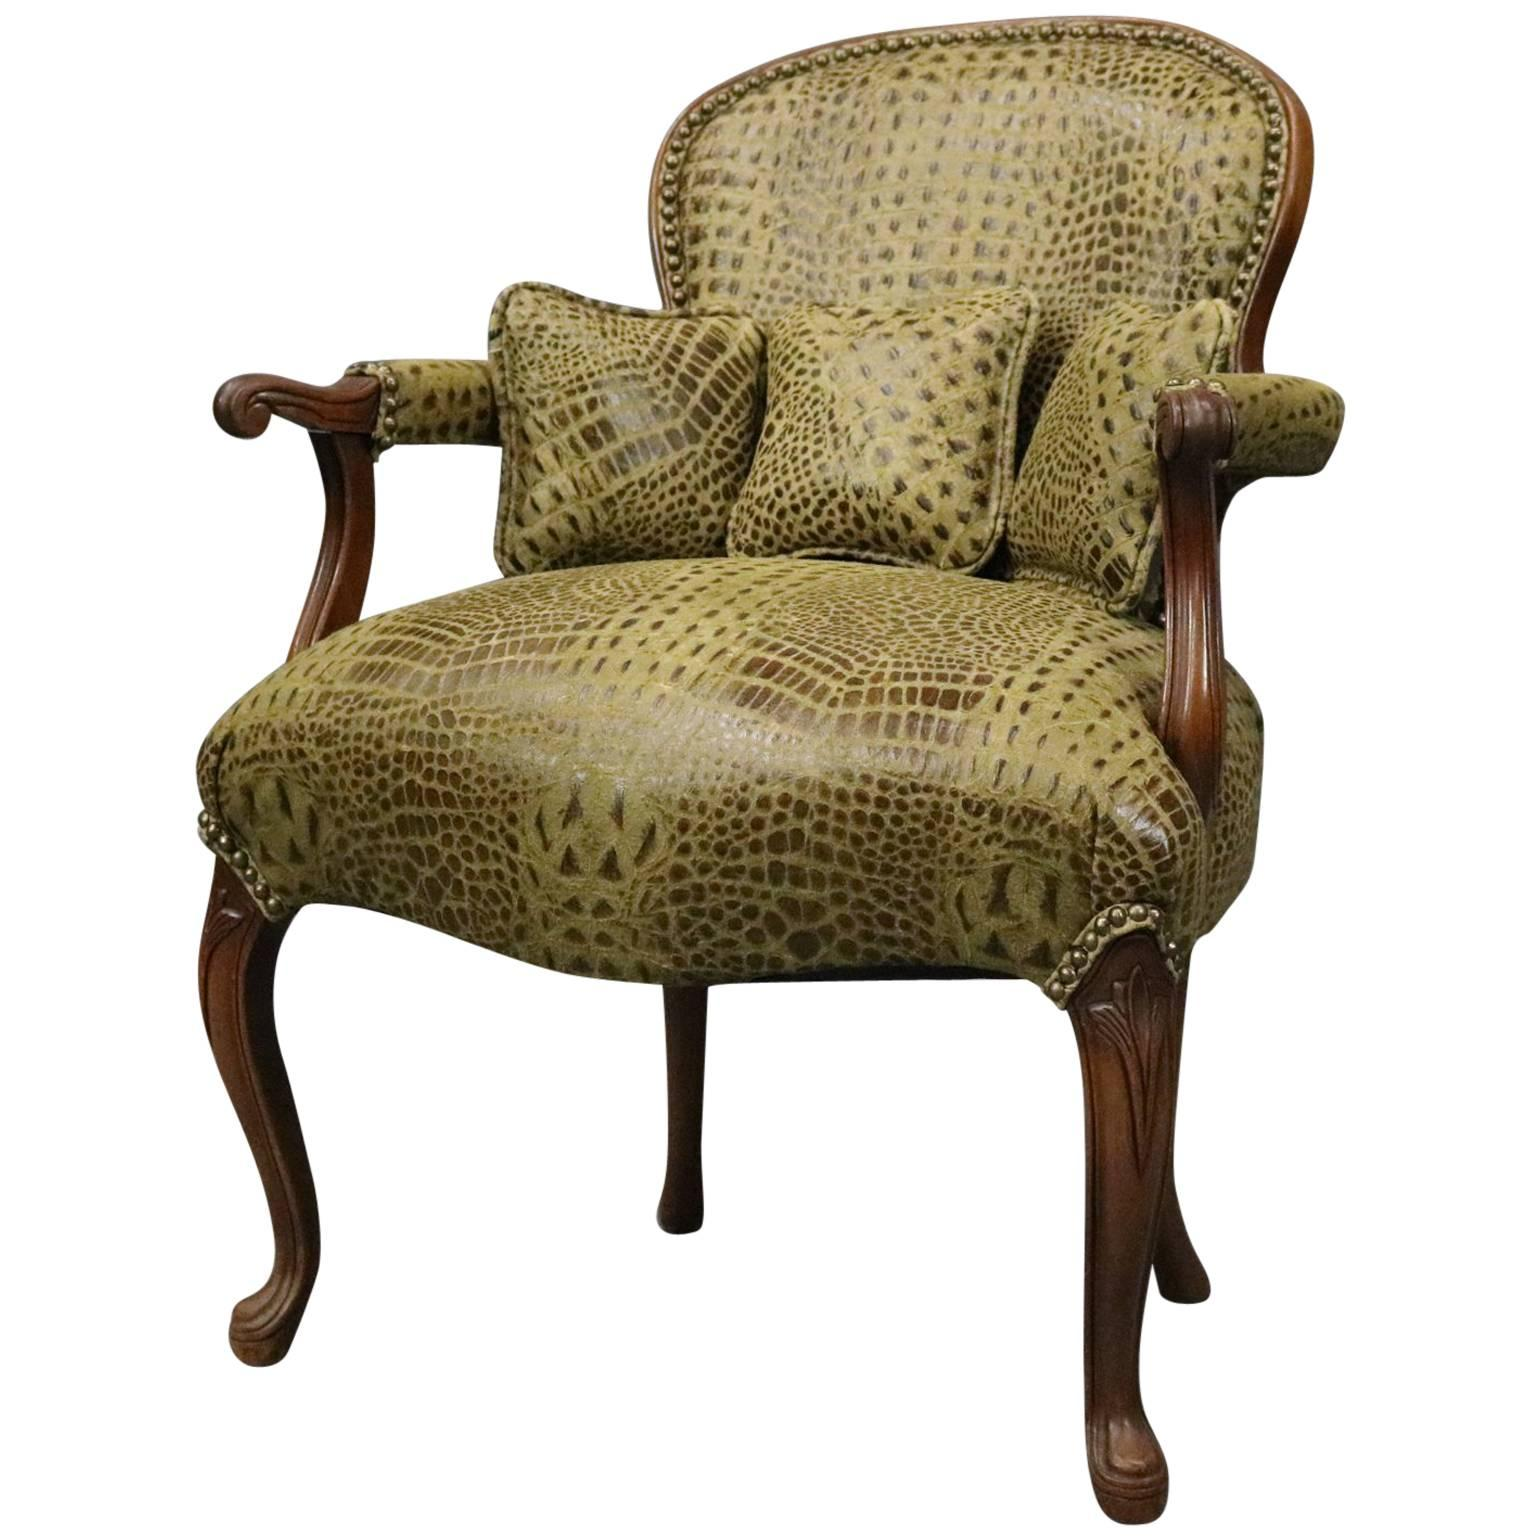 Attractive Vintage French Alligator Print Leather Louis XV Style Armchair And Ottoman  For Sale